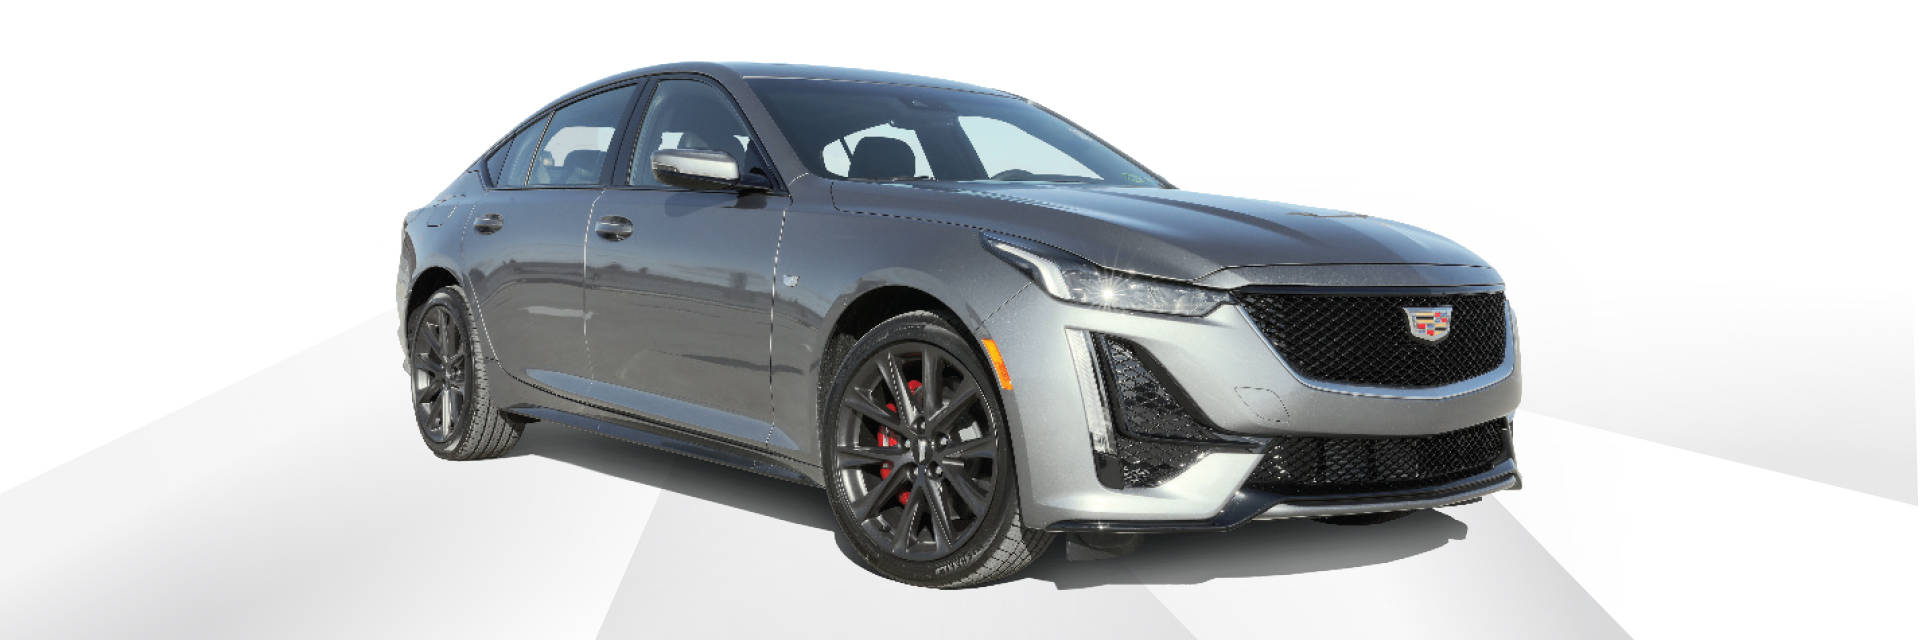 2021 CADILLAC CT5 SWEEPSTAKES!